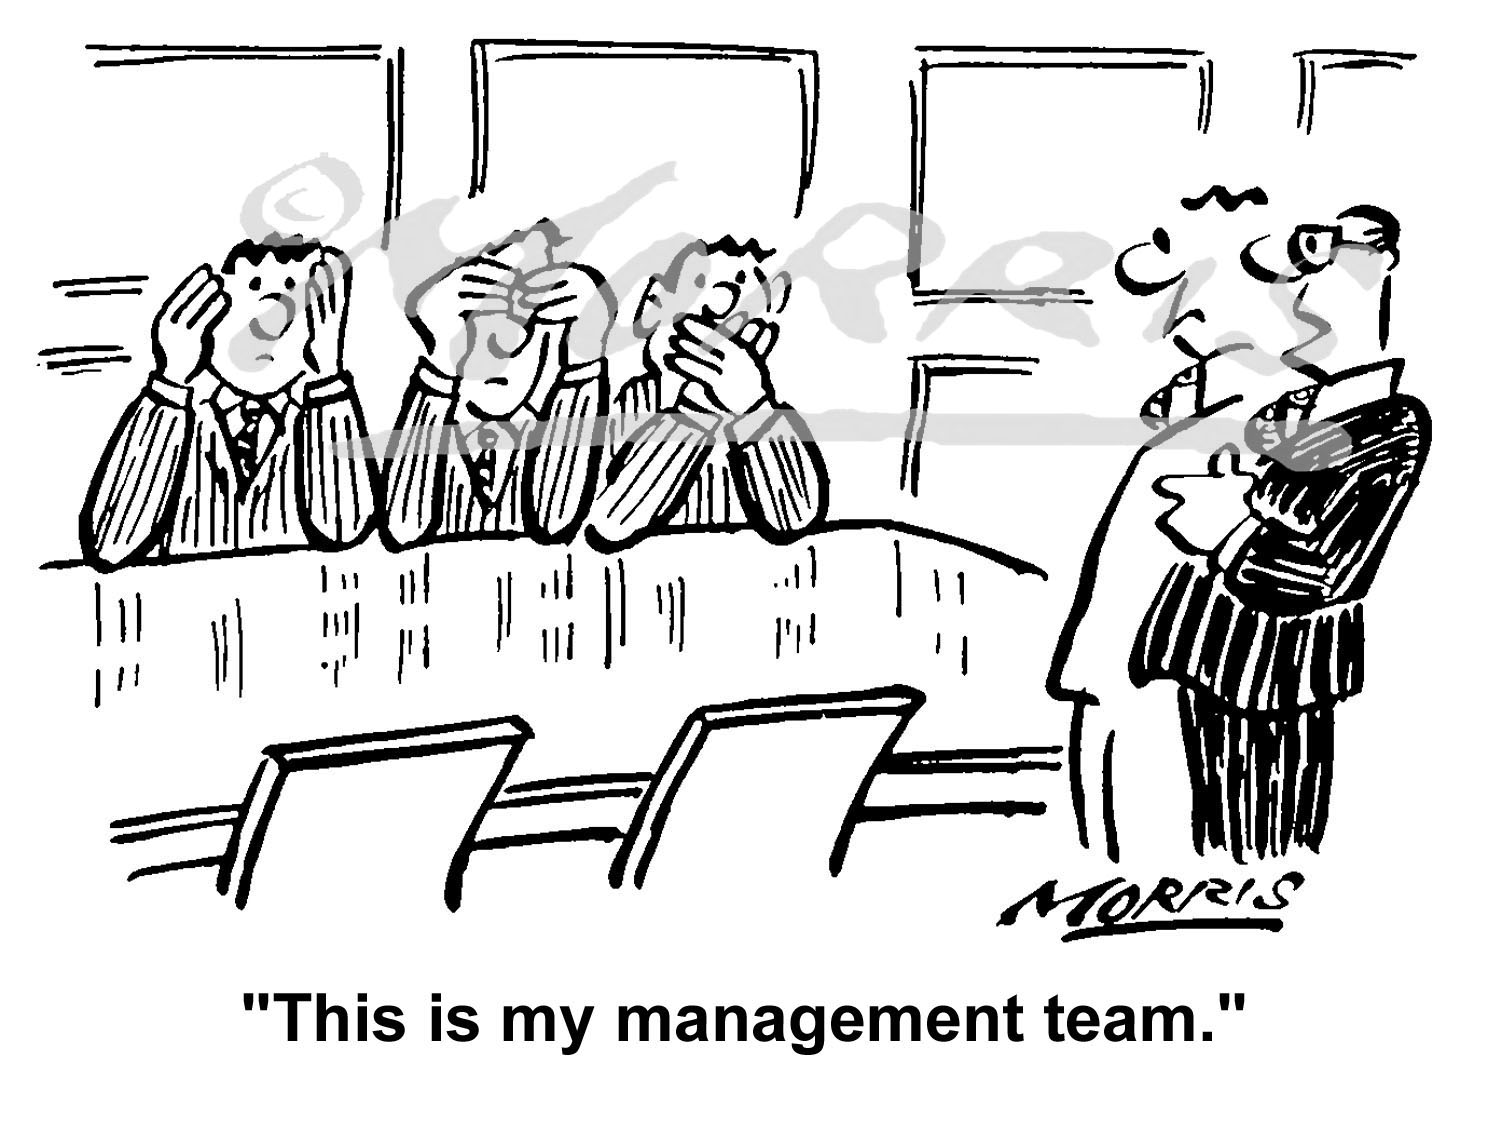 Boardroom cartoon – Ref: 1597bw